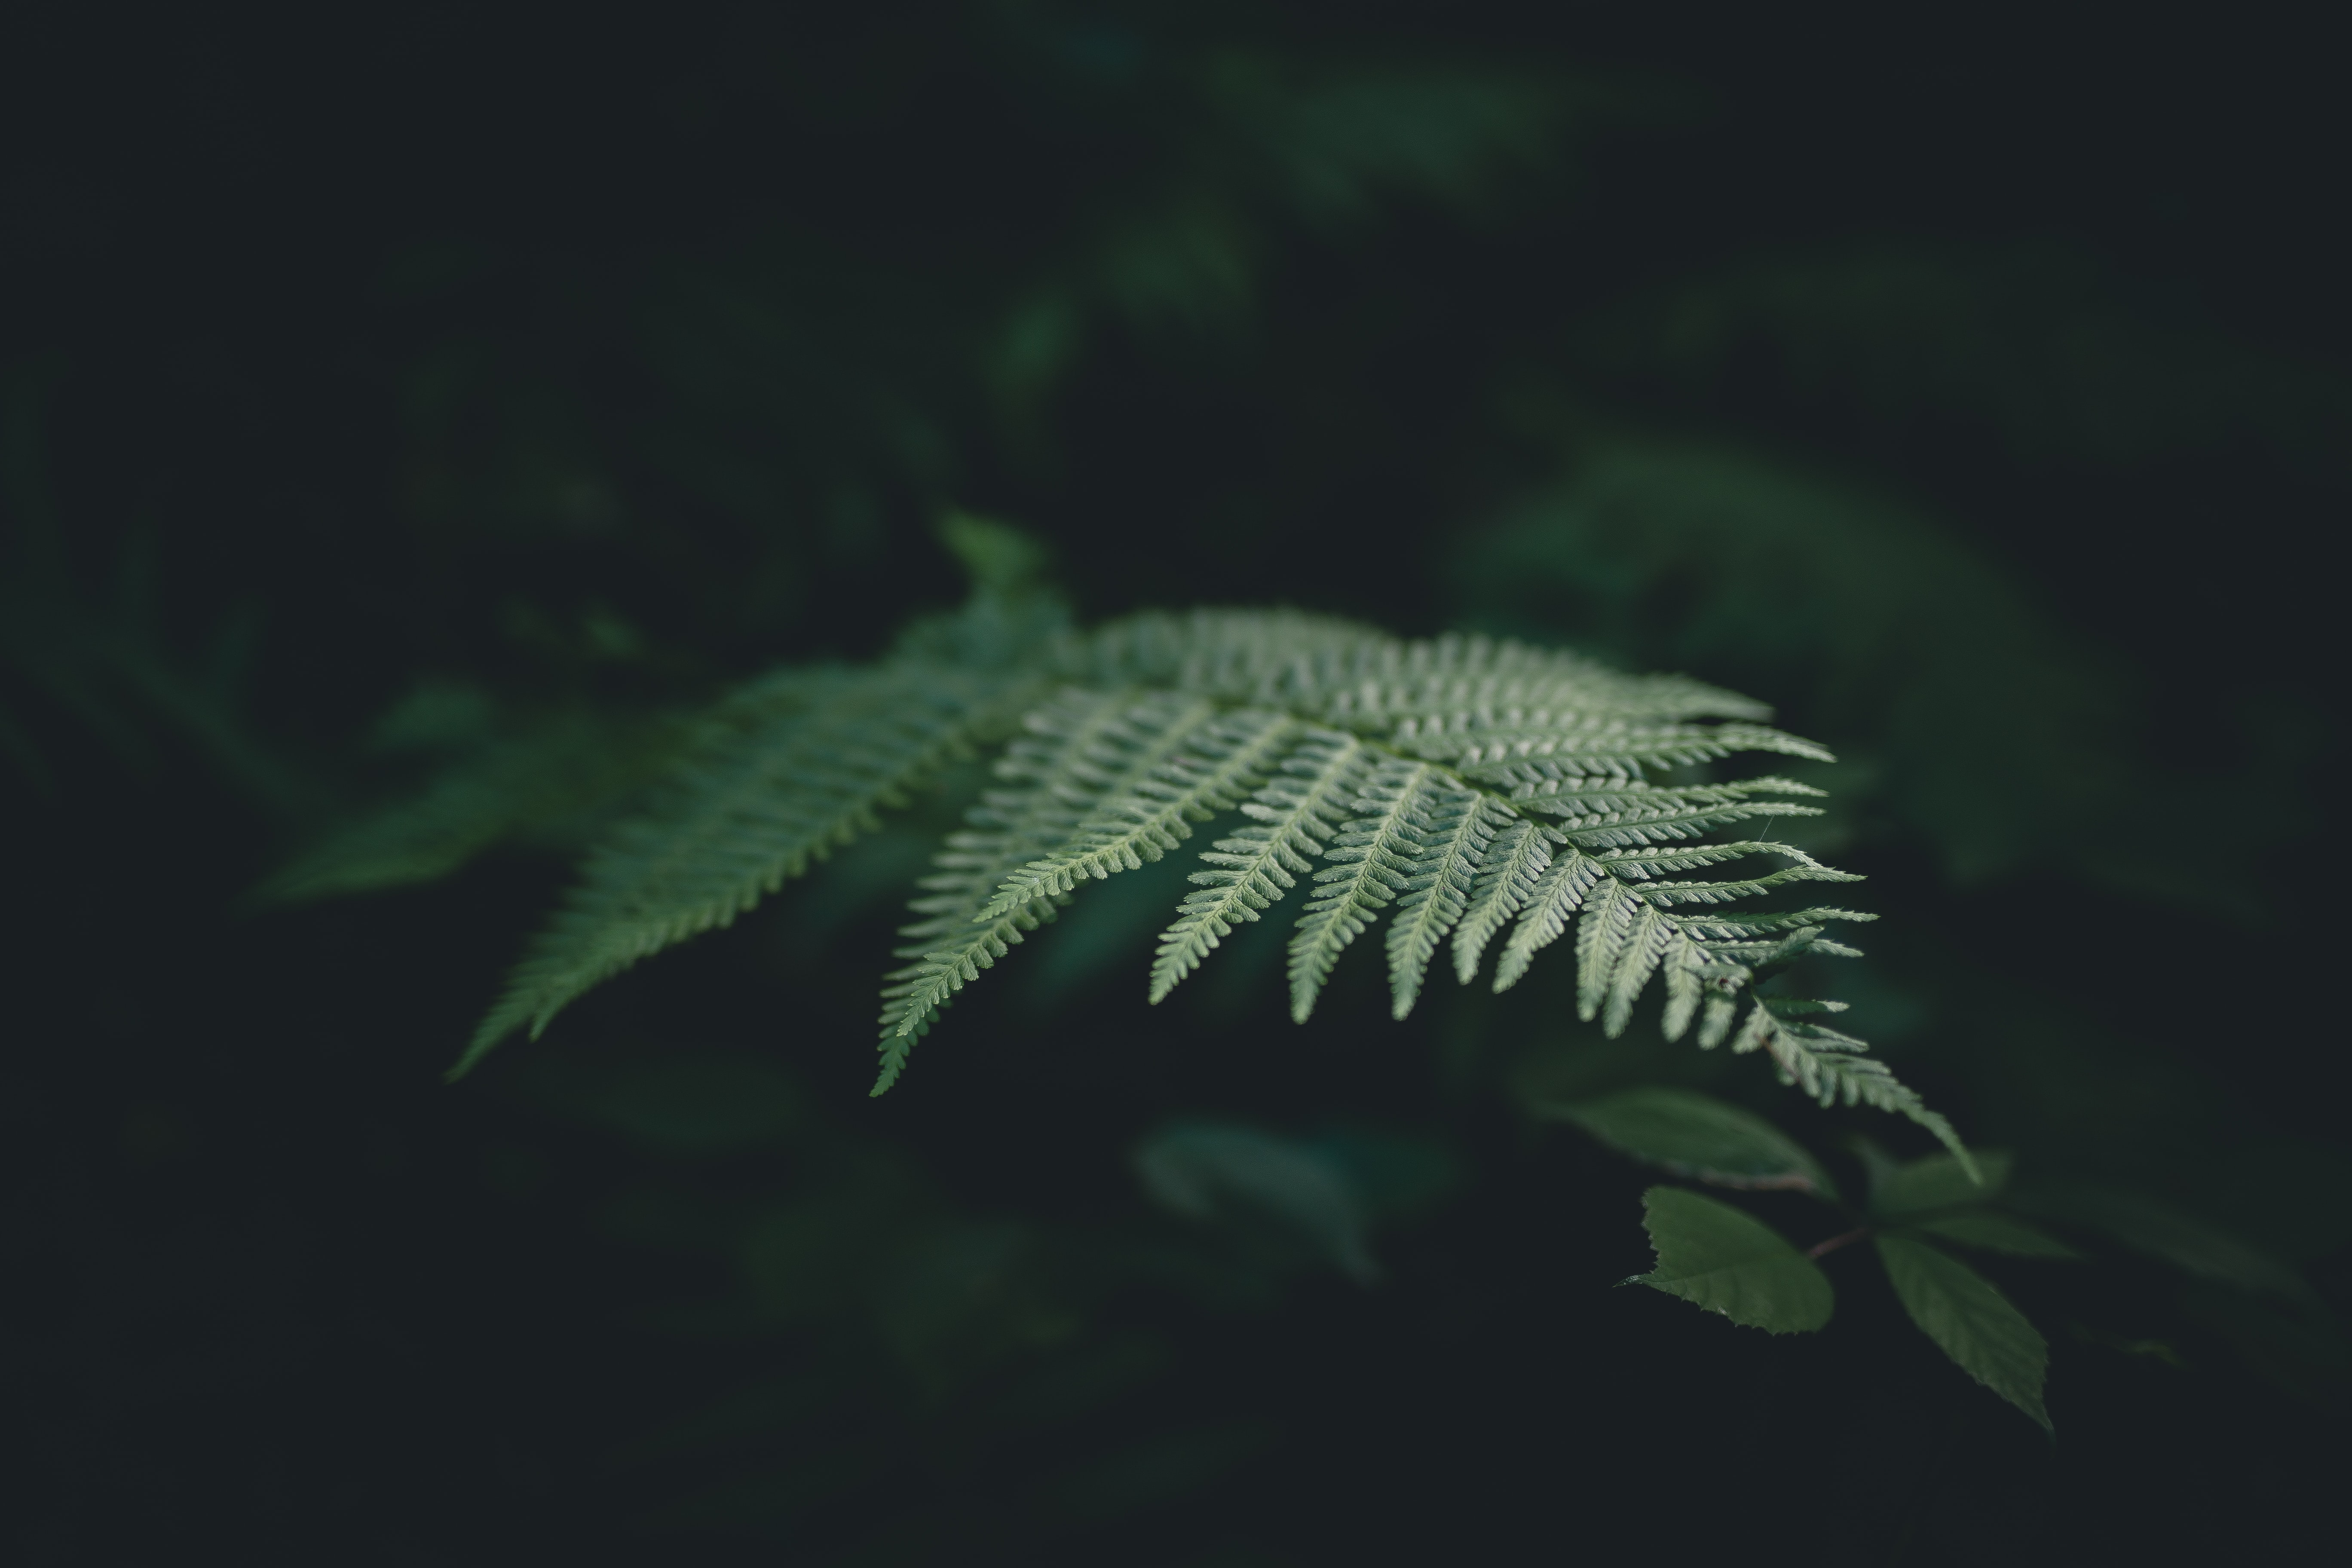 selective focus photograph of fern plant